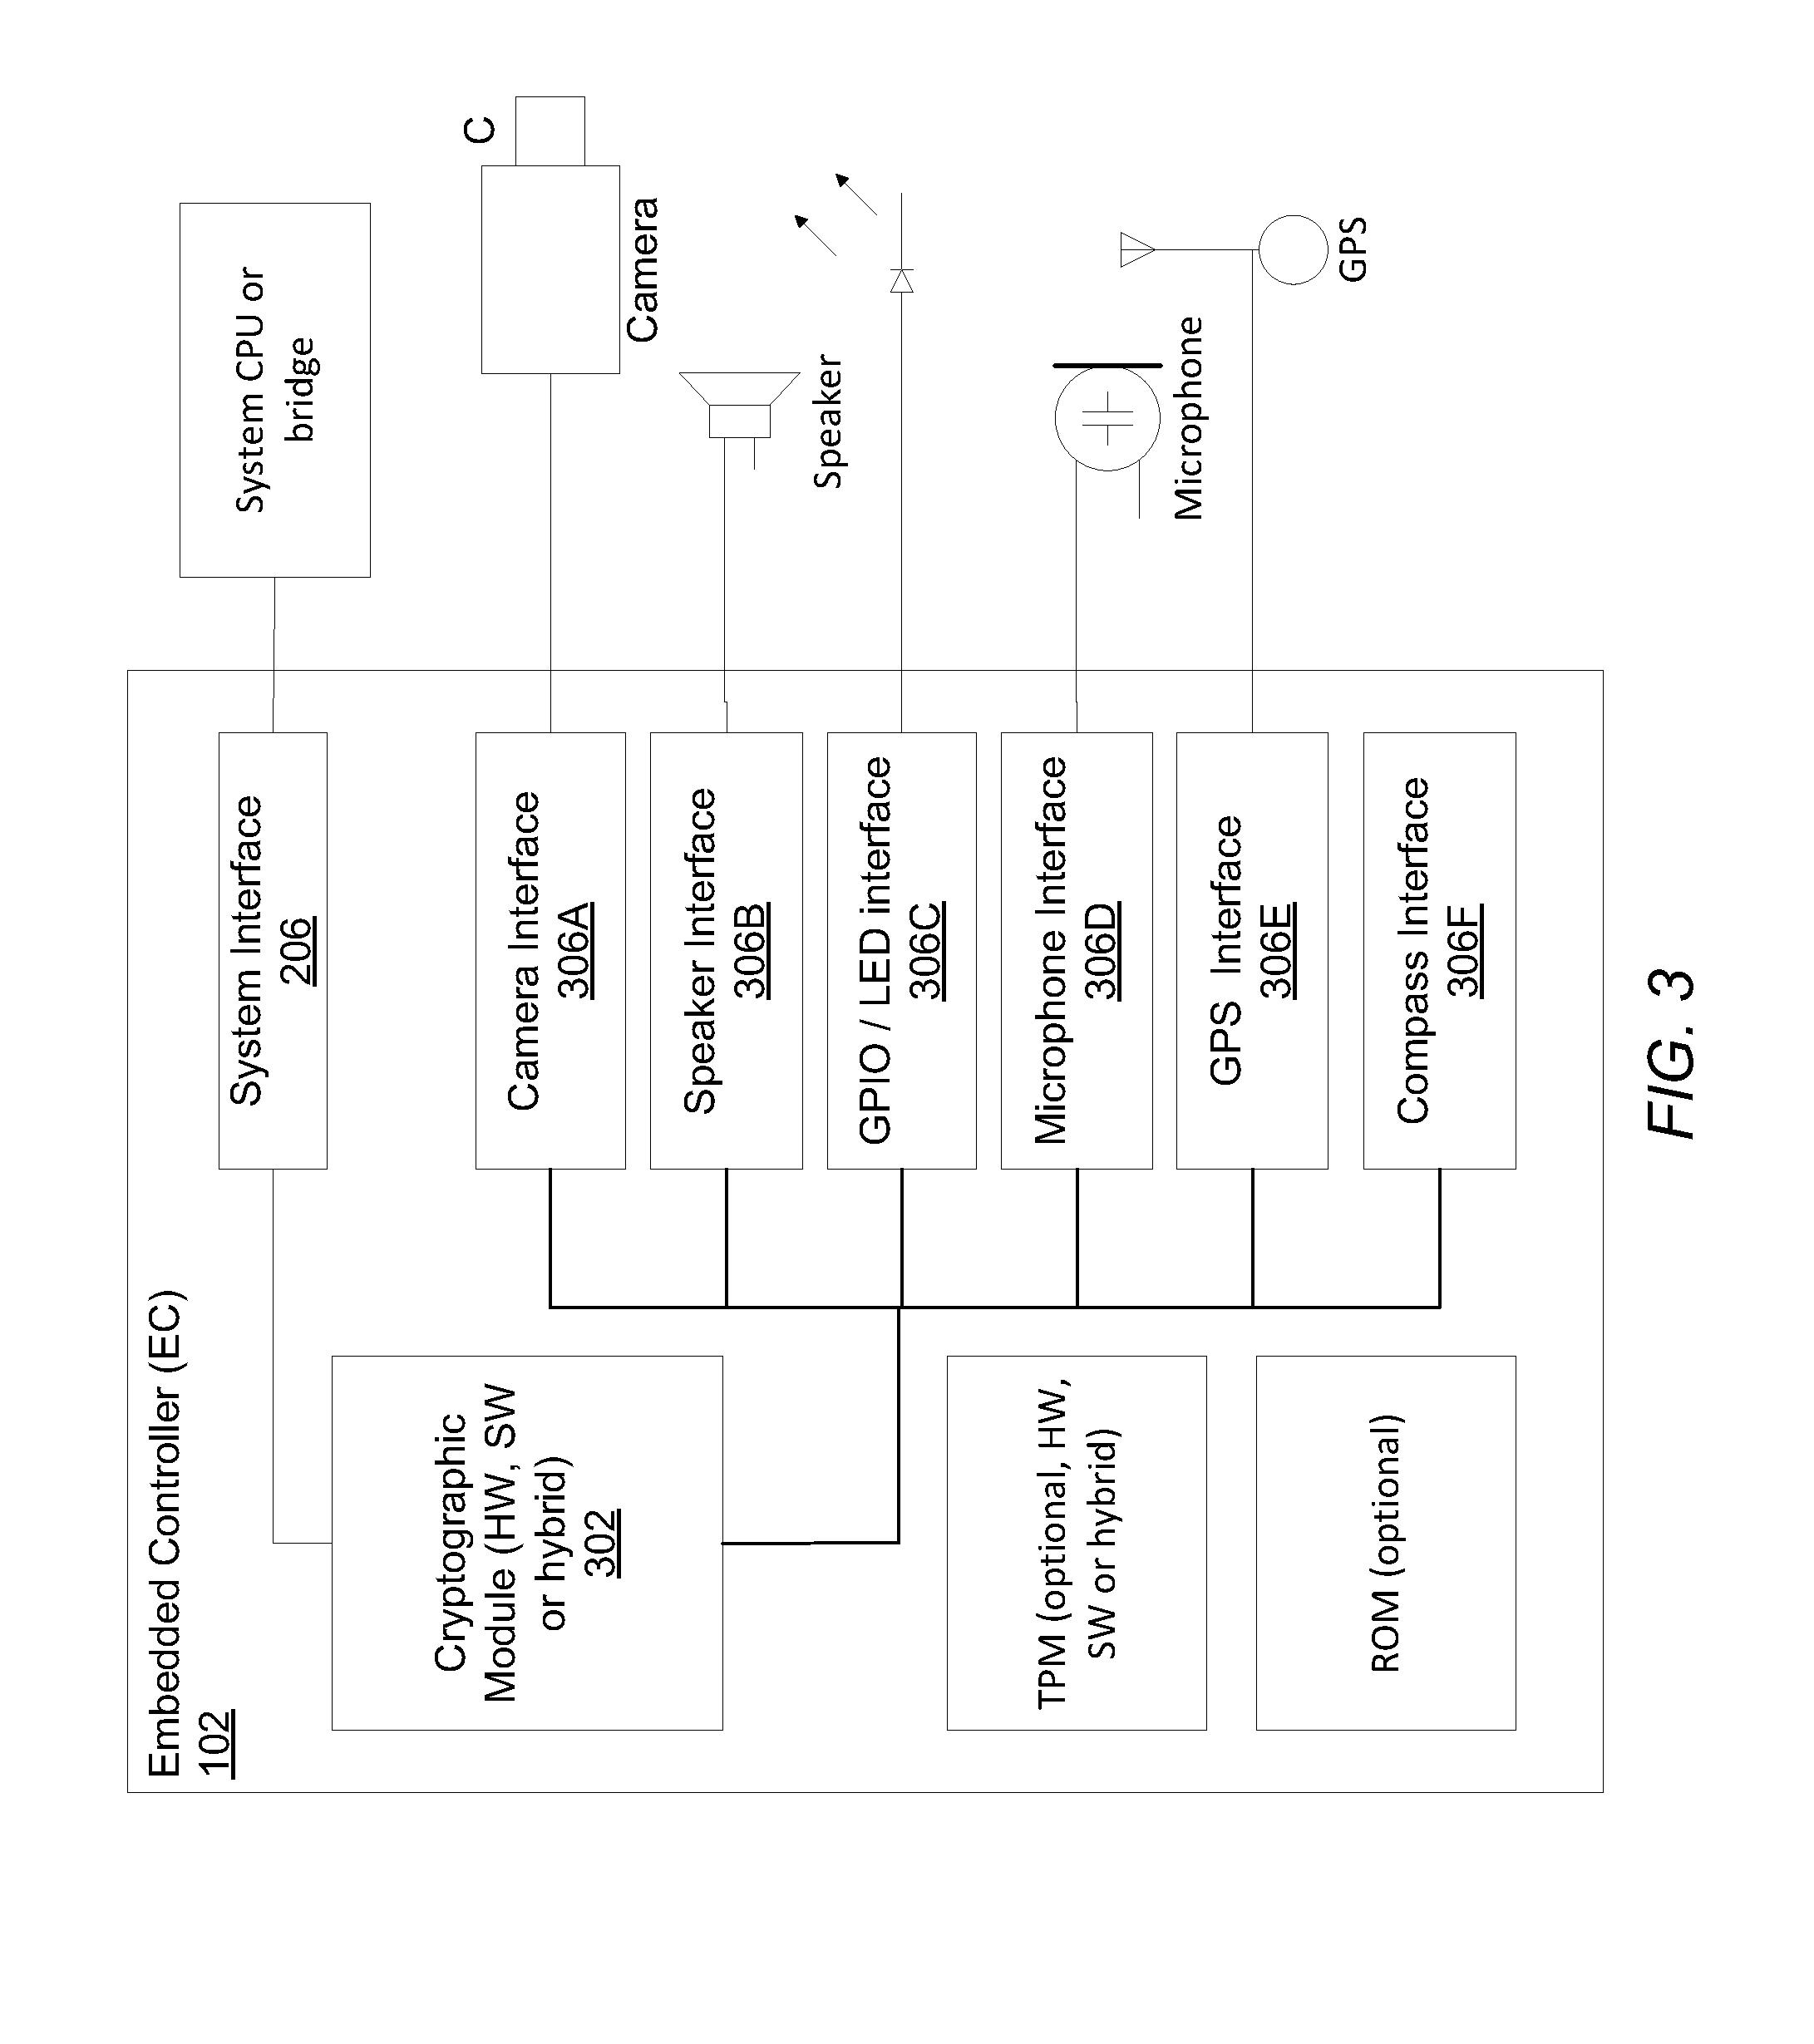 Patent Us20130246800 Enhancing Security Of Sensor Data For A Voice Recognition System And Embedded Controllers Drawing